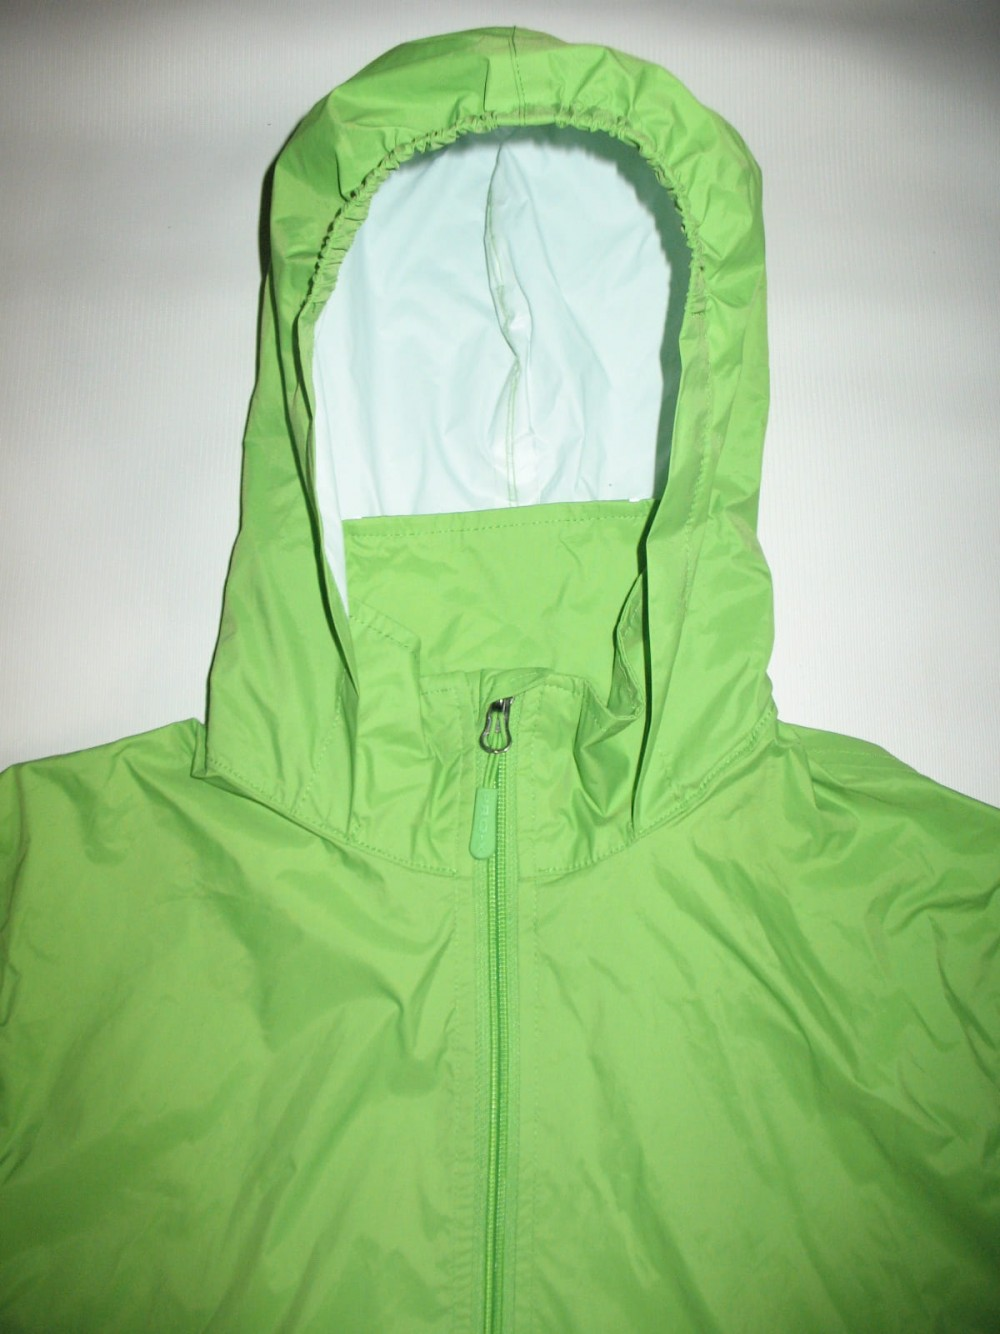 Куртка PRO-X elements waterproof green jacket (размер 164см/S) - 5